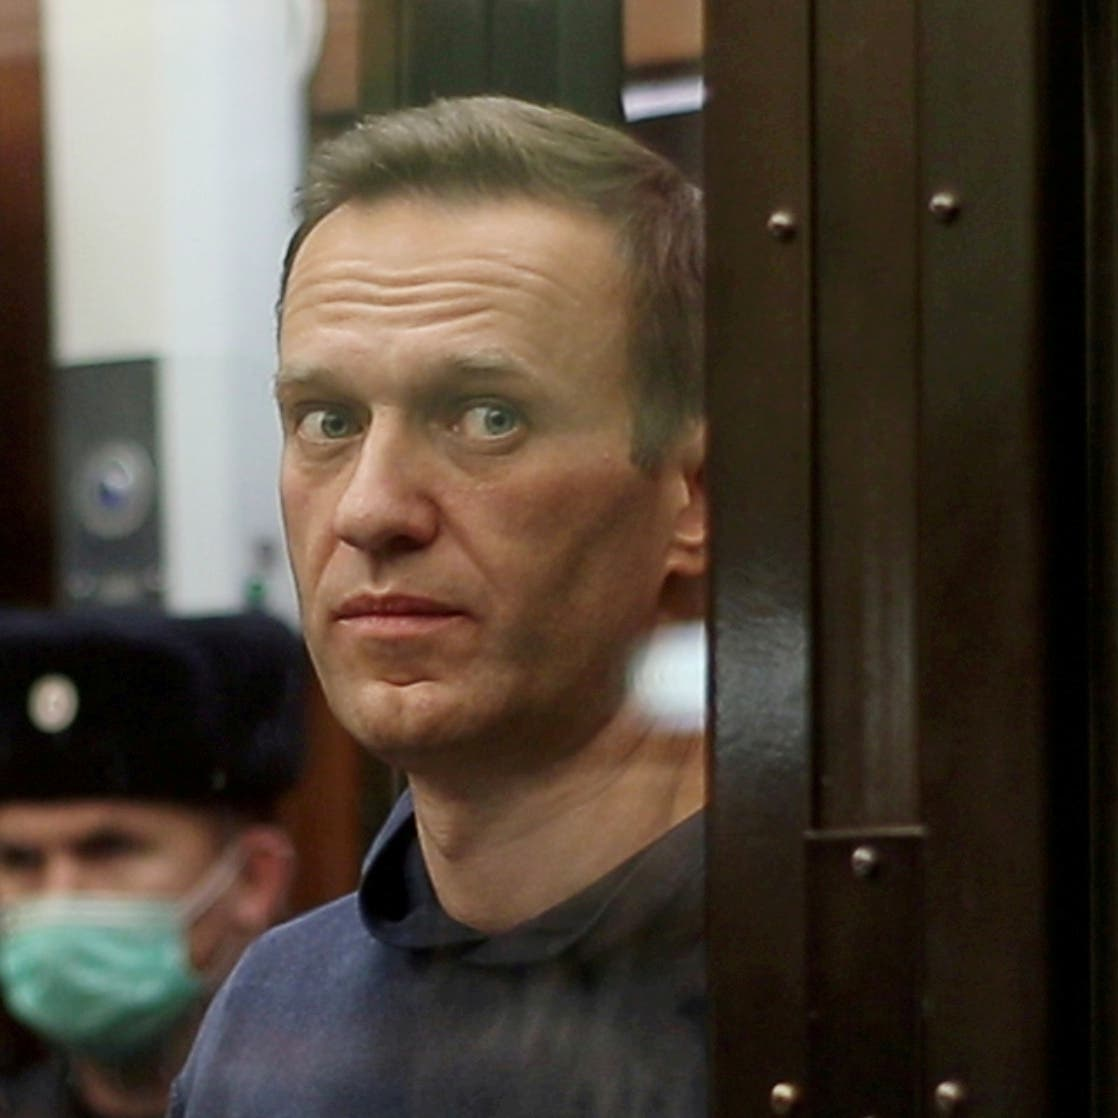 Navalny's life 'in serious danger,' needs urgent medical evacuation: UN rights expert